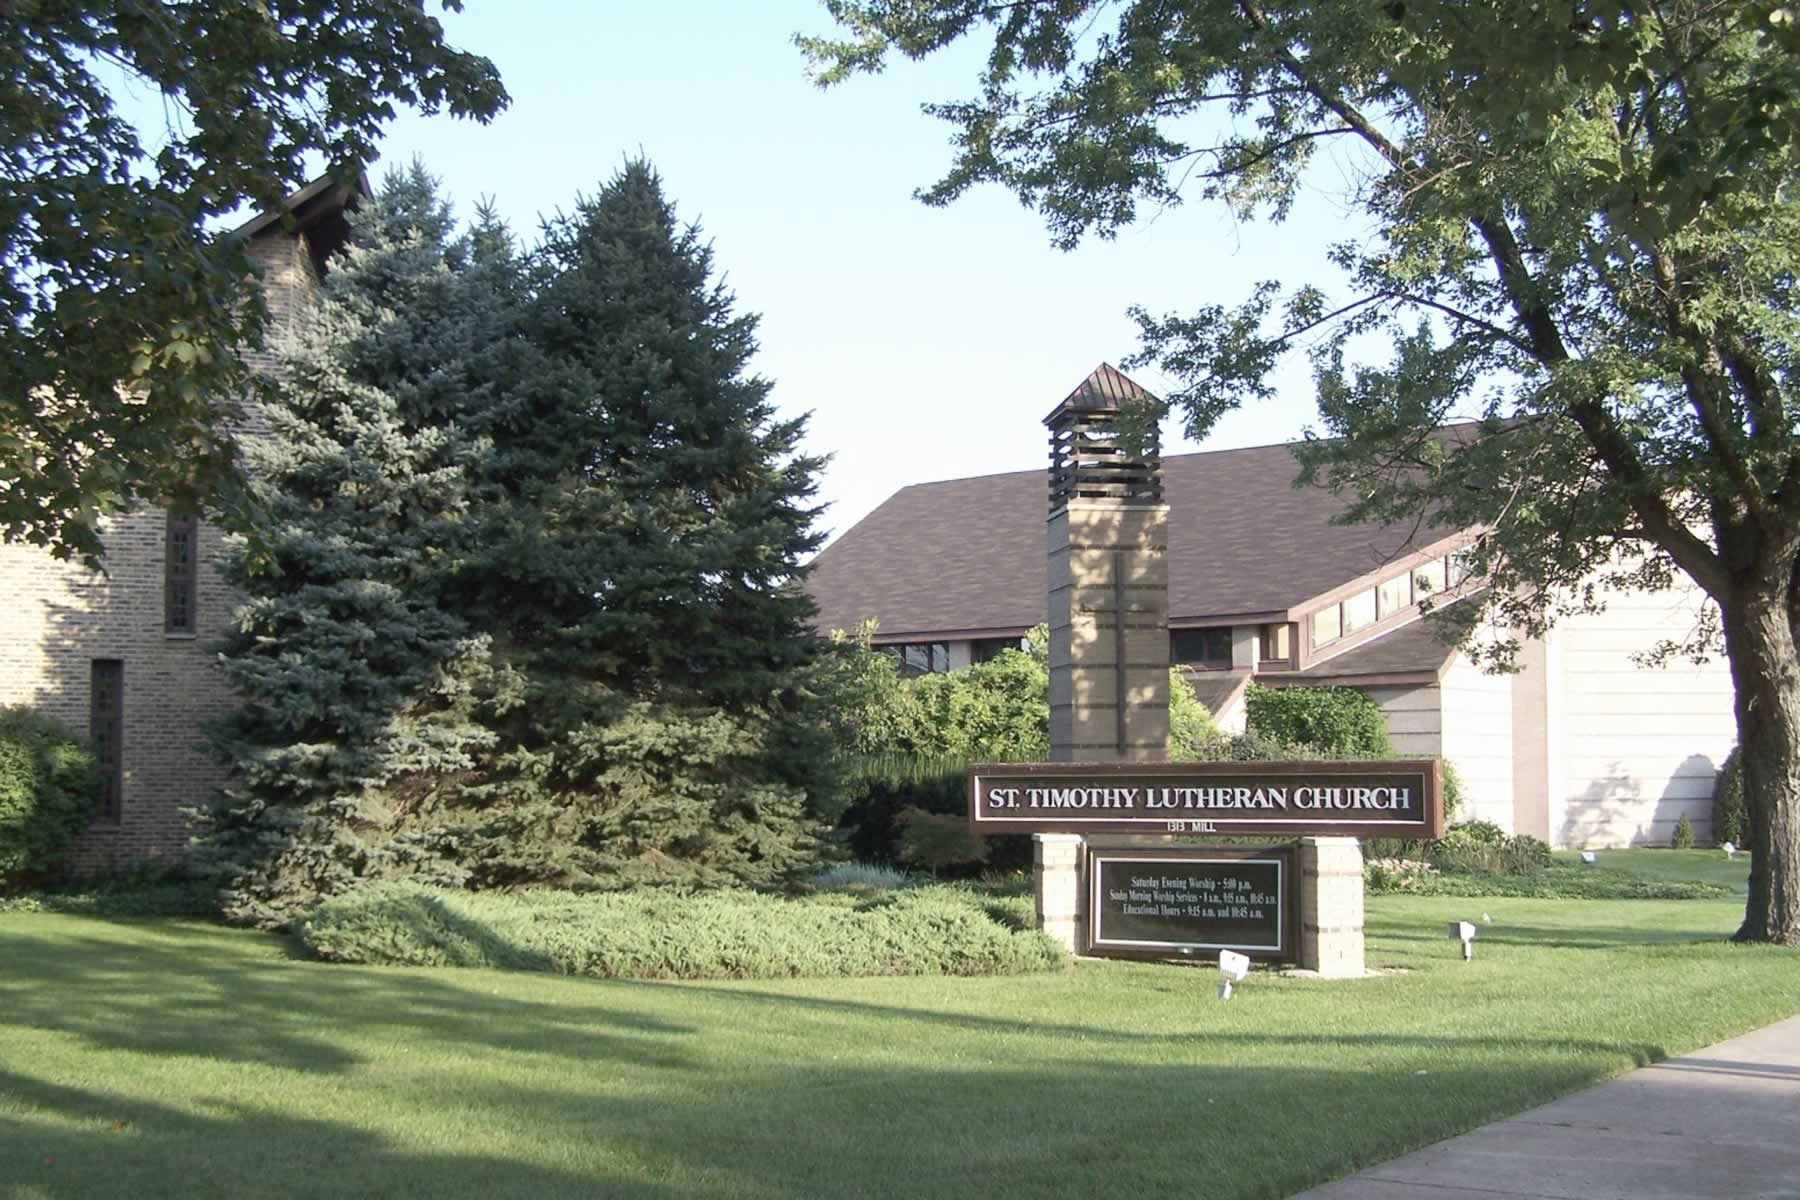 The James Company - St. Timothy Lutheran Church in Naperville, IL